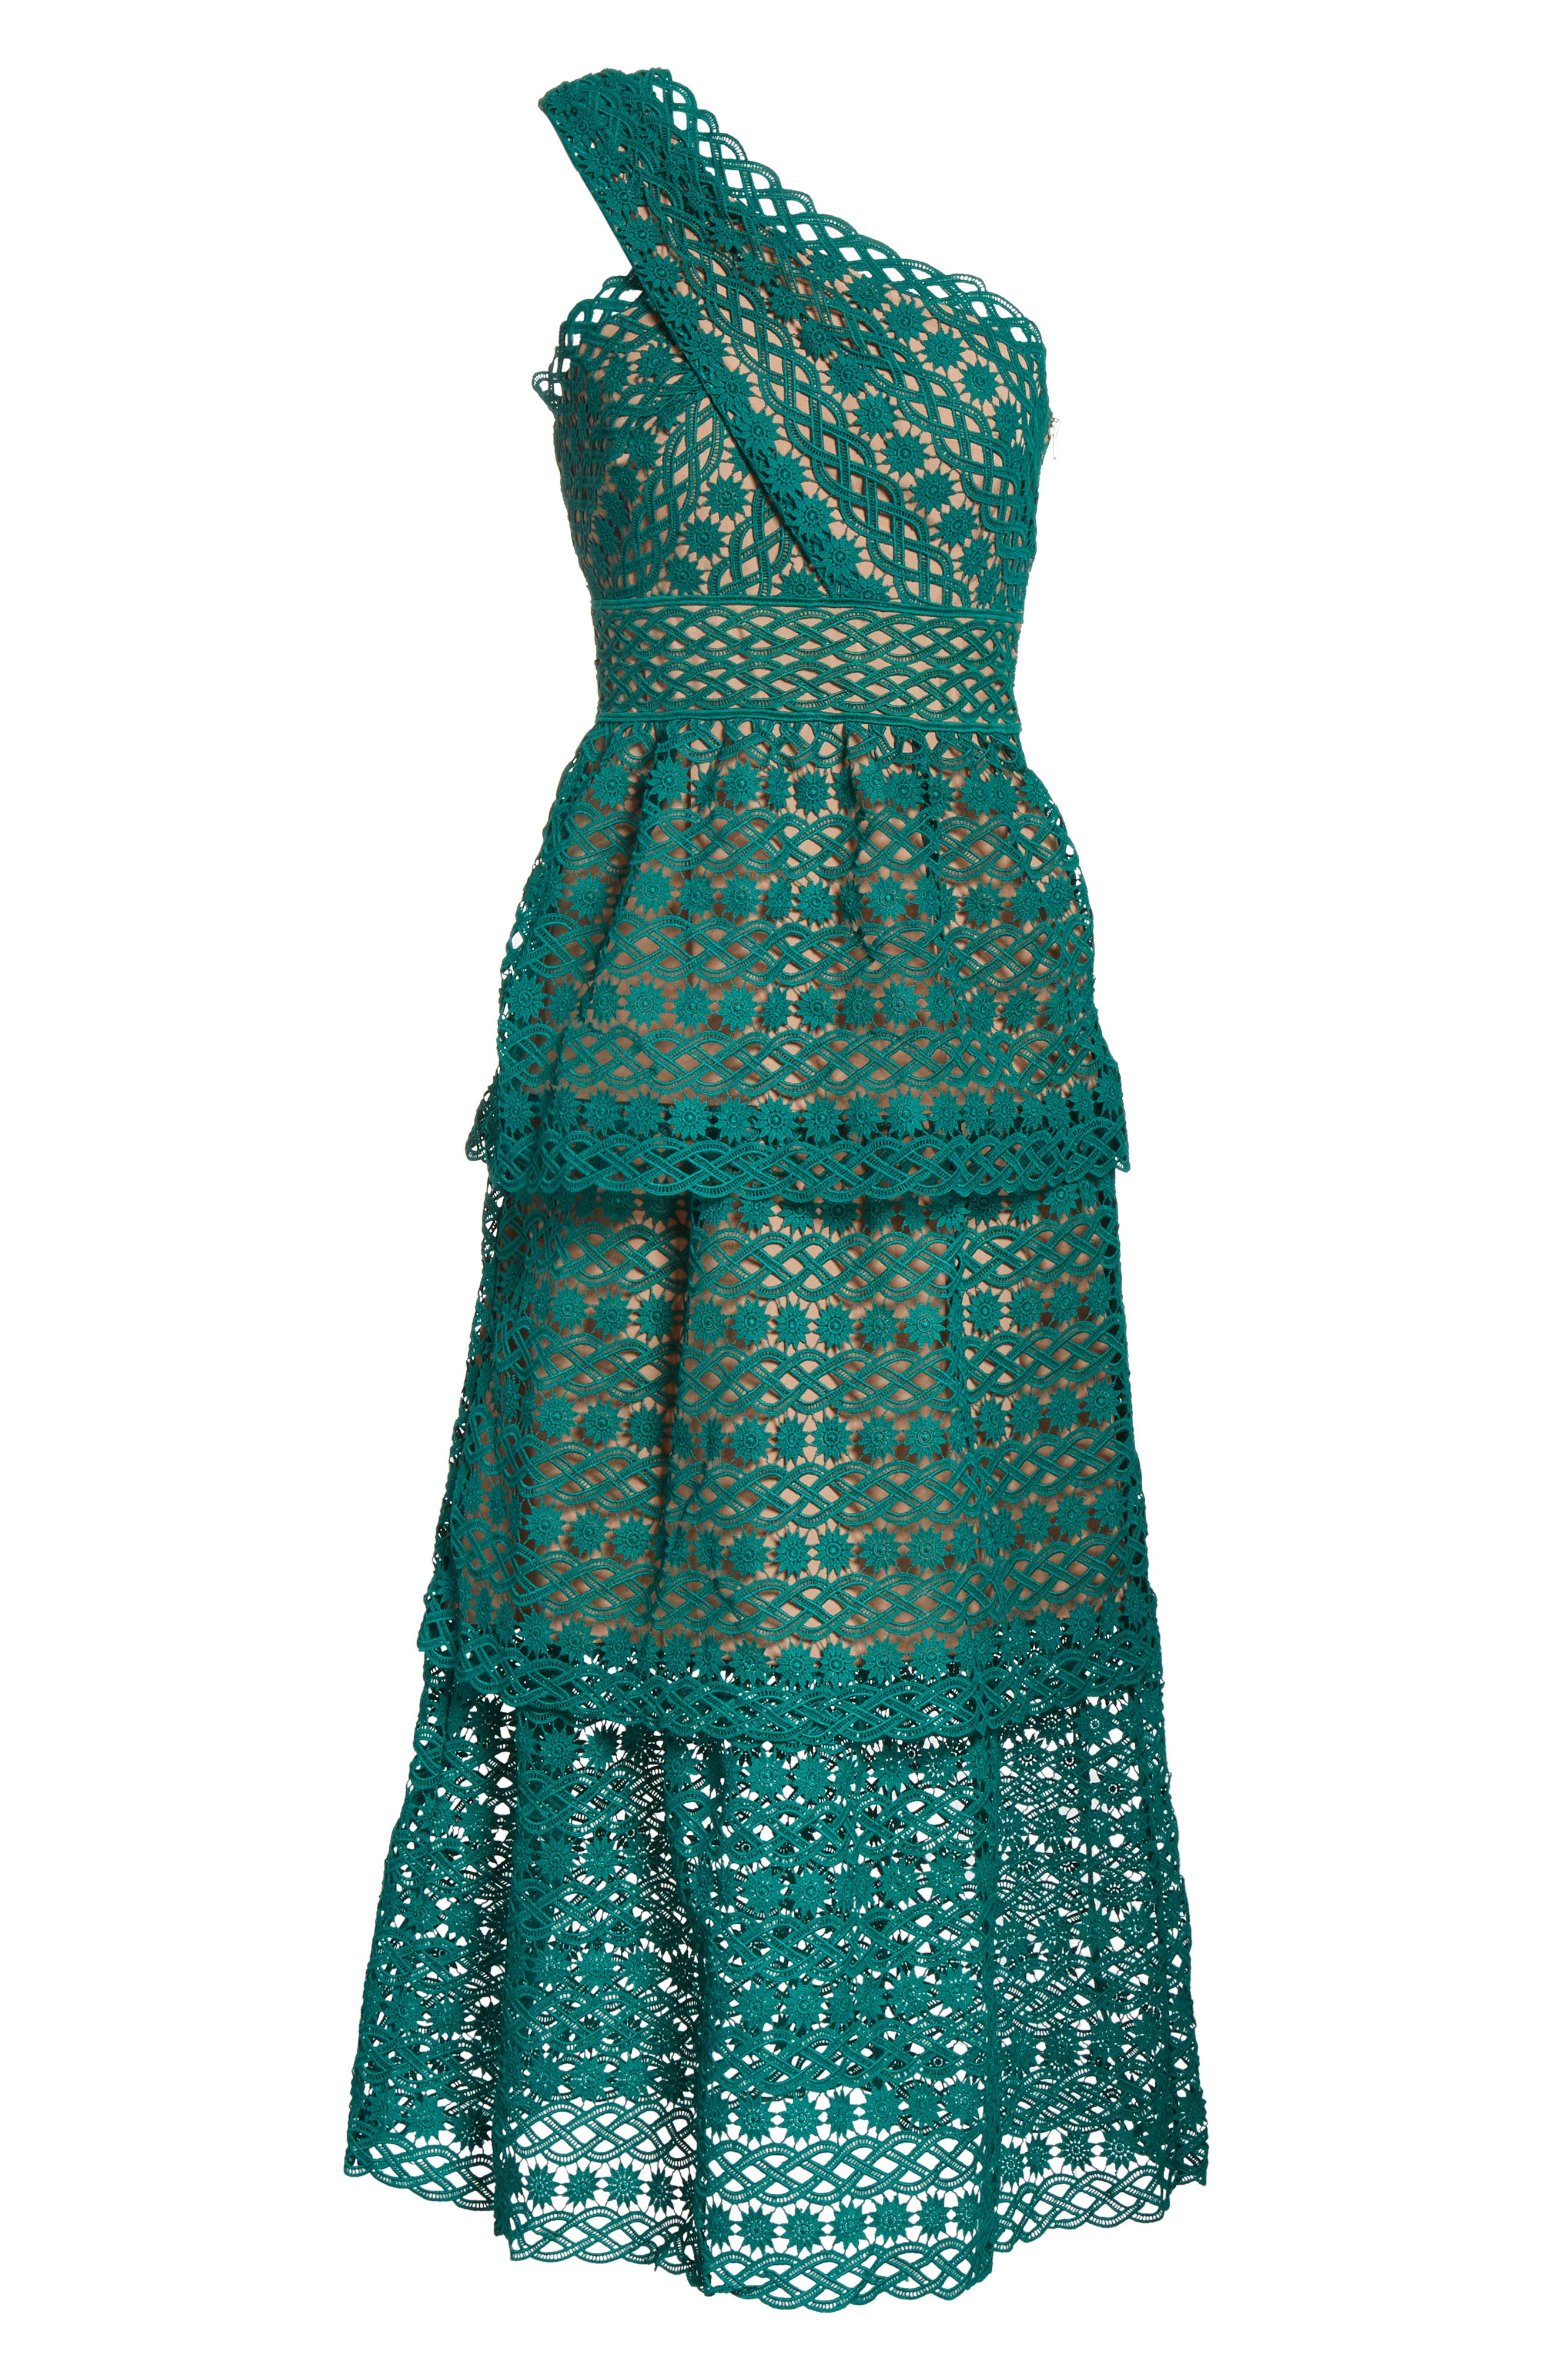 Lace One-Shoulder Midi Dress,                             Alternate thumbnail 6, color,                             Green